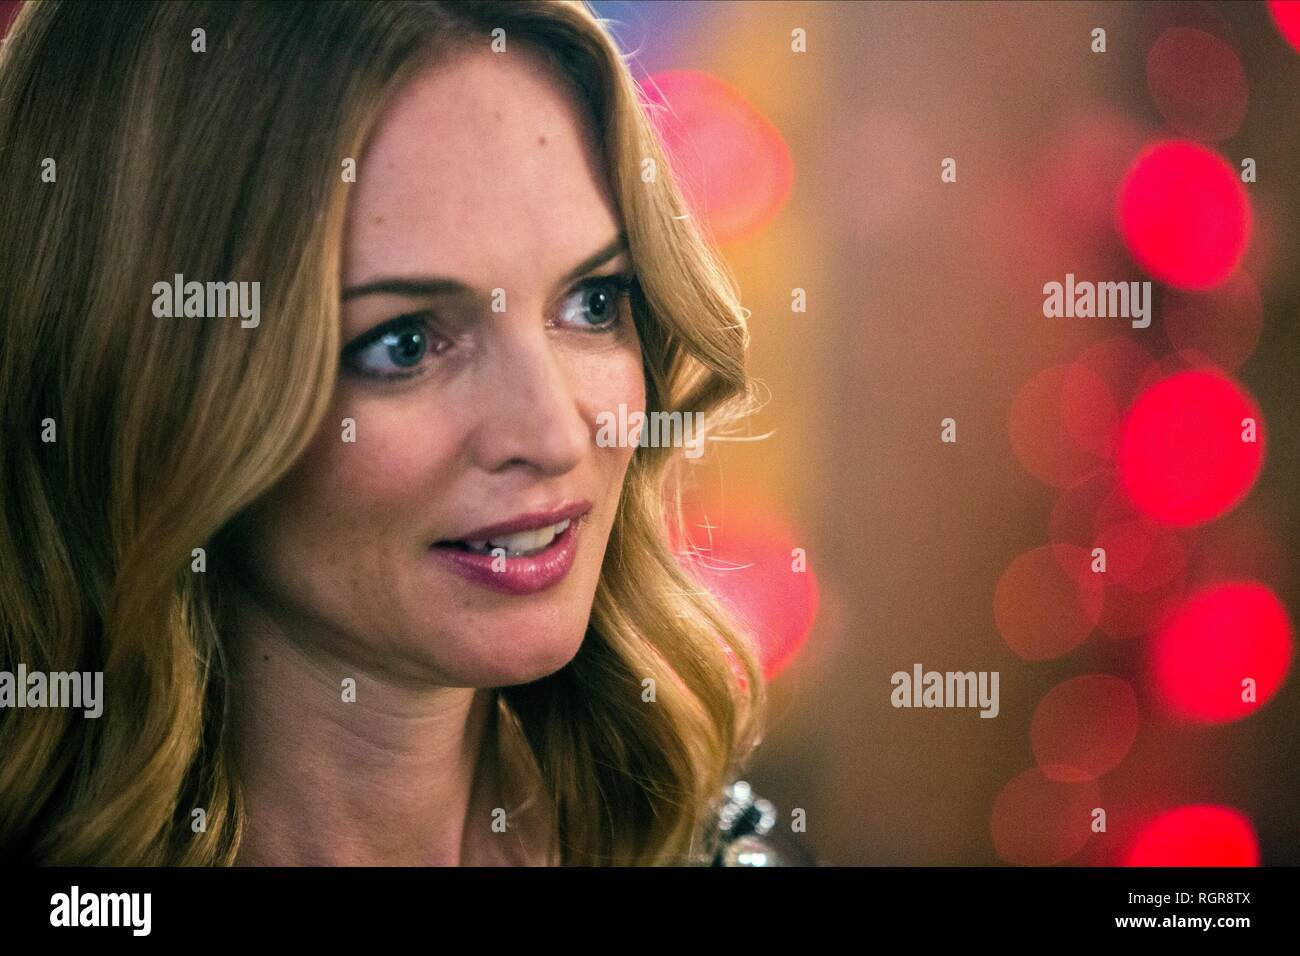 HEATHER GRAHAM LA MOITIÉ MAGIC (2018) Photo Stock